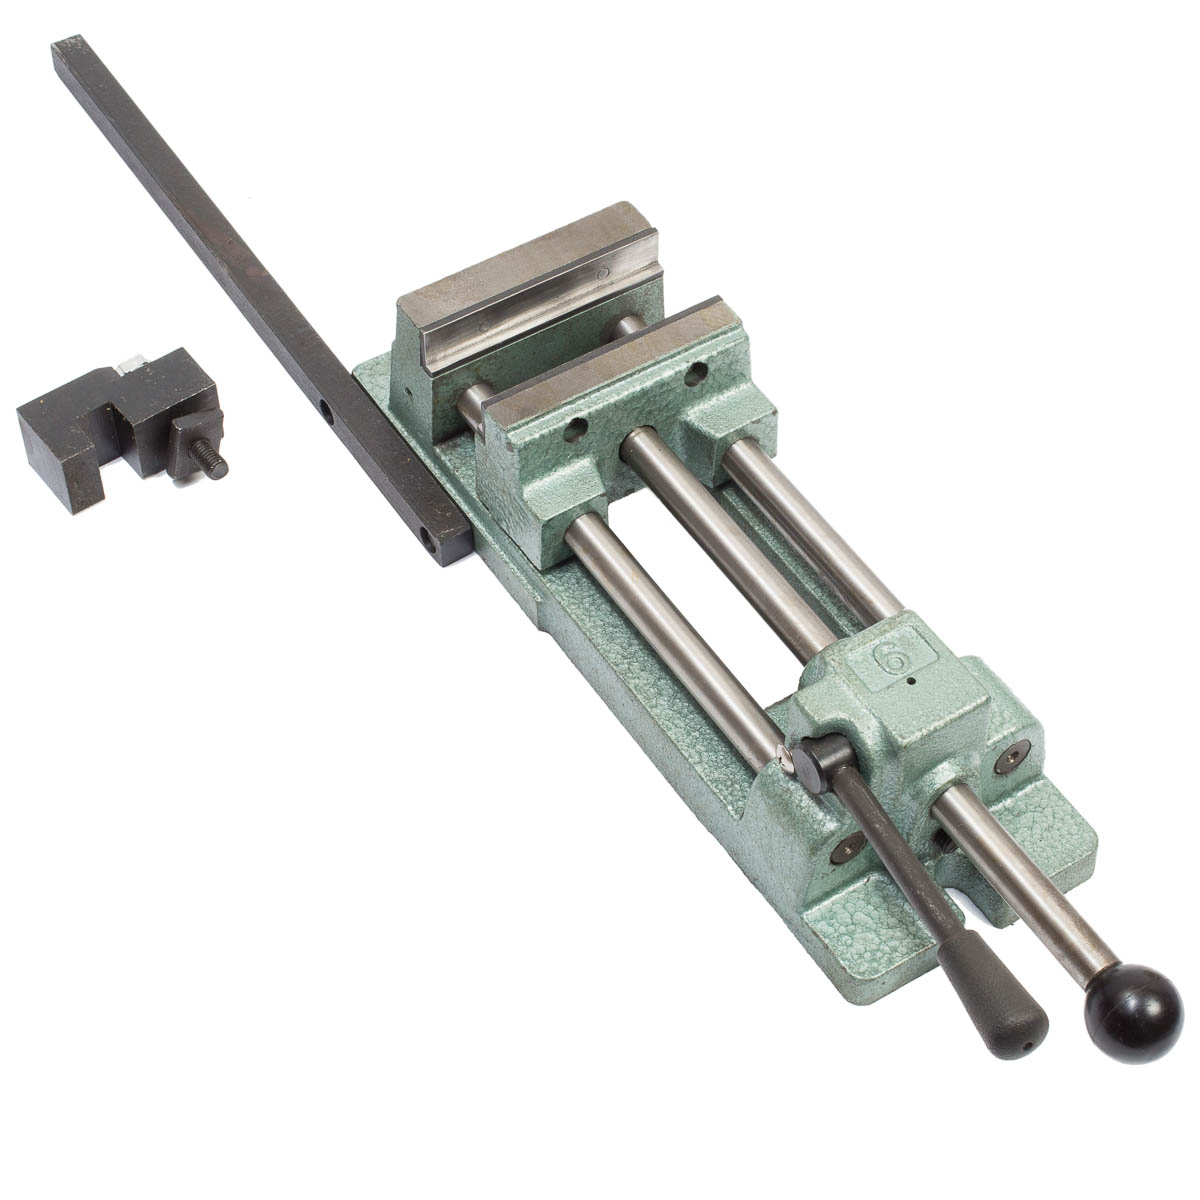 What Is A Drill Press Vise Used For